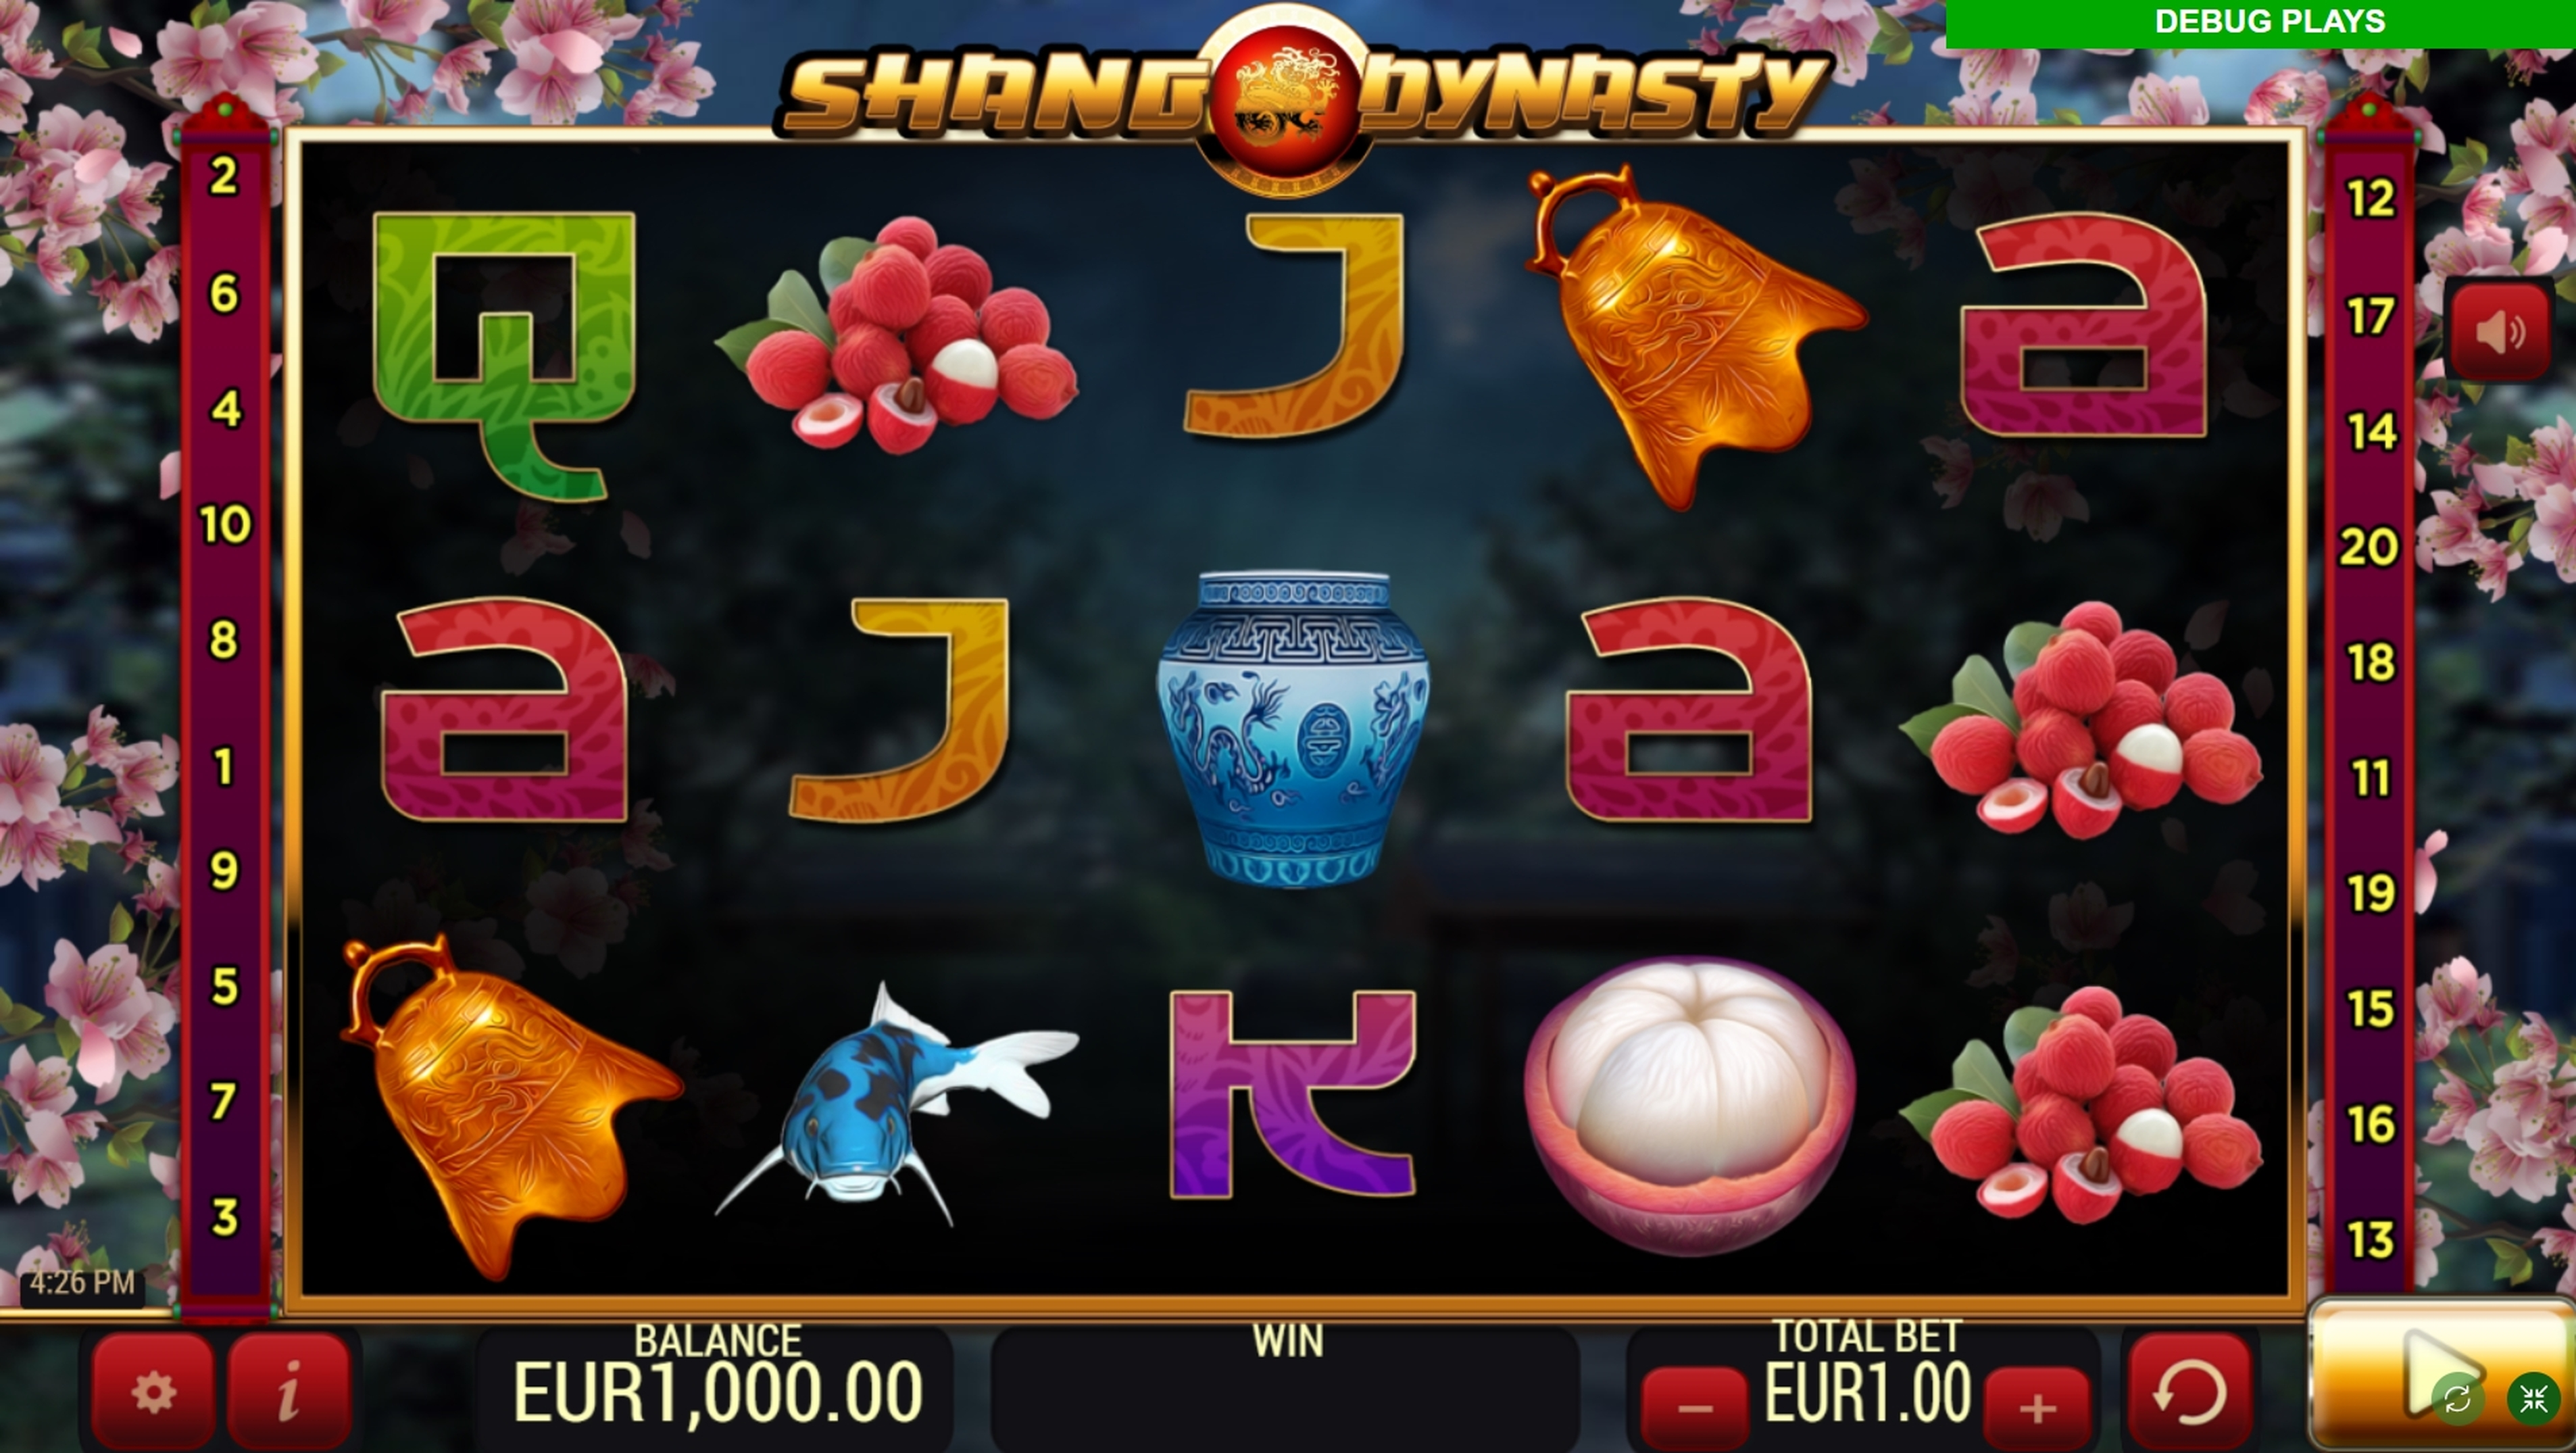 Reels in Shang Dynasty Slot Game by YoloPlay